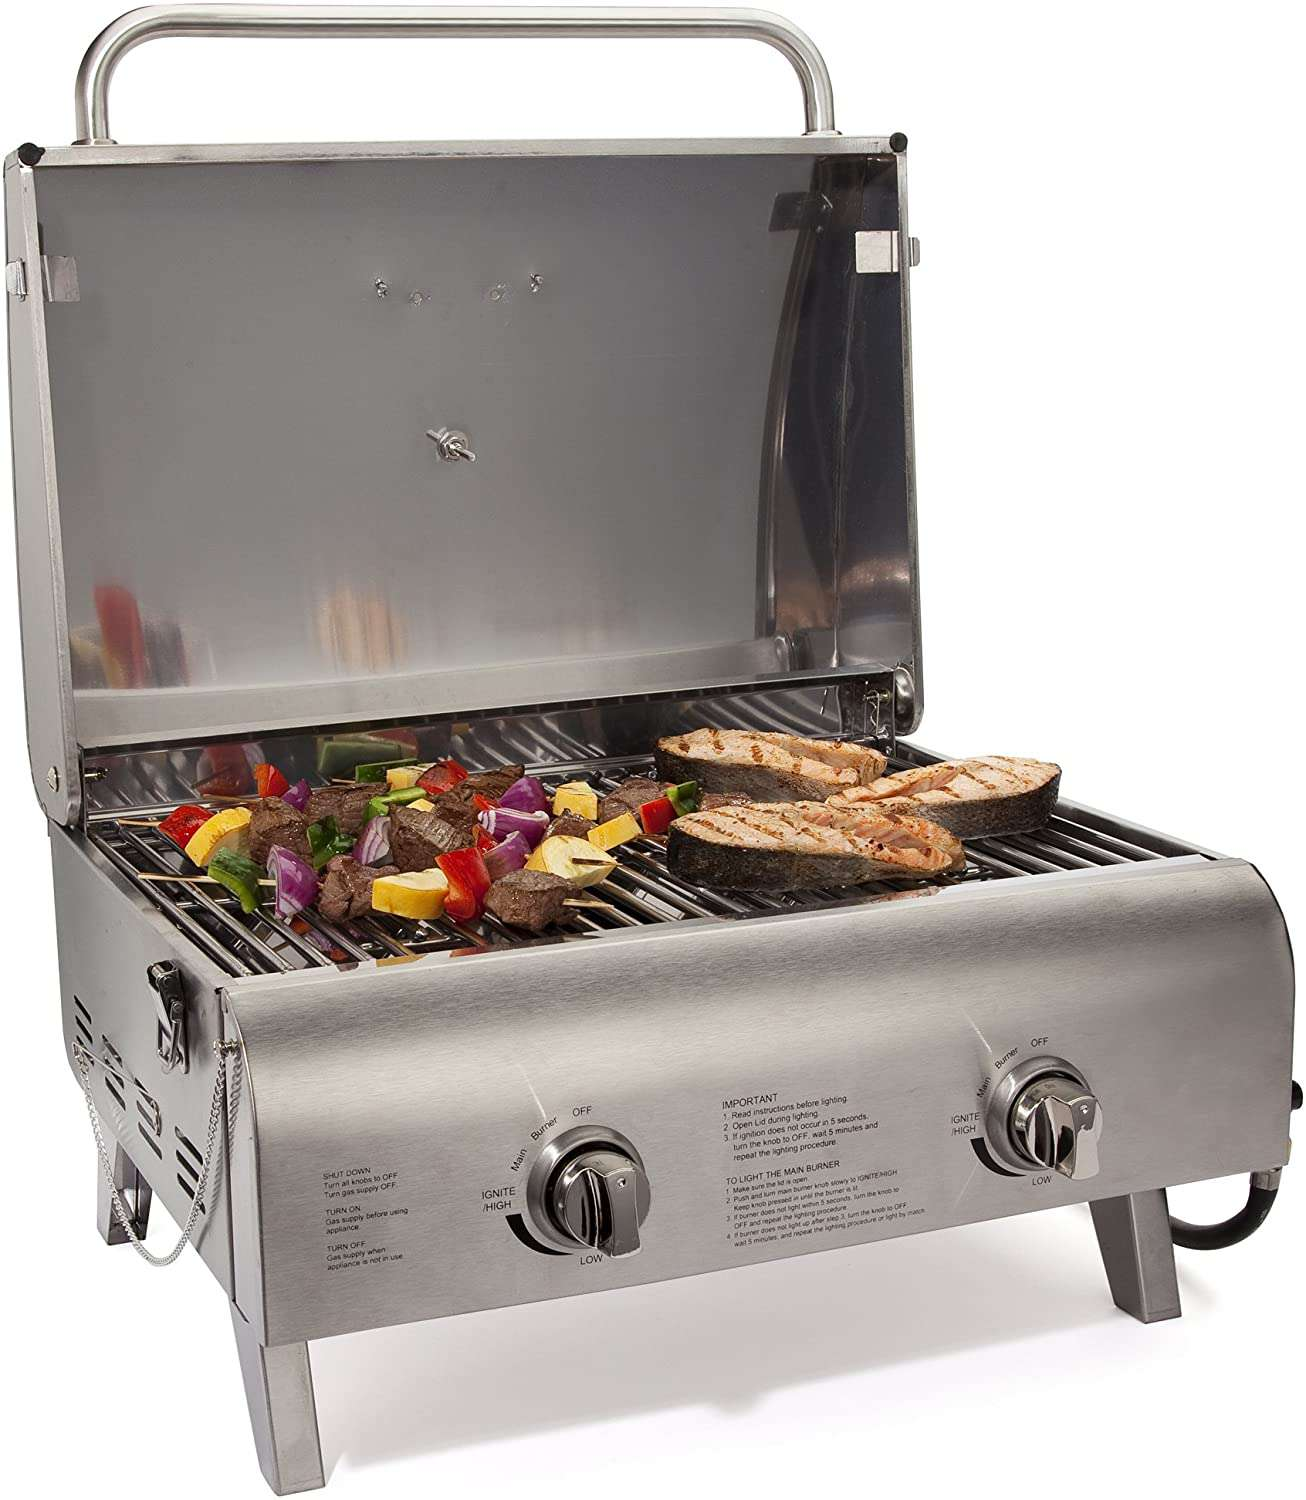 Cuisinart Chef's Style Propane Tabletop Grill